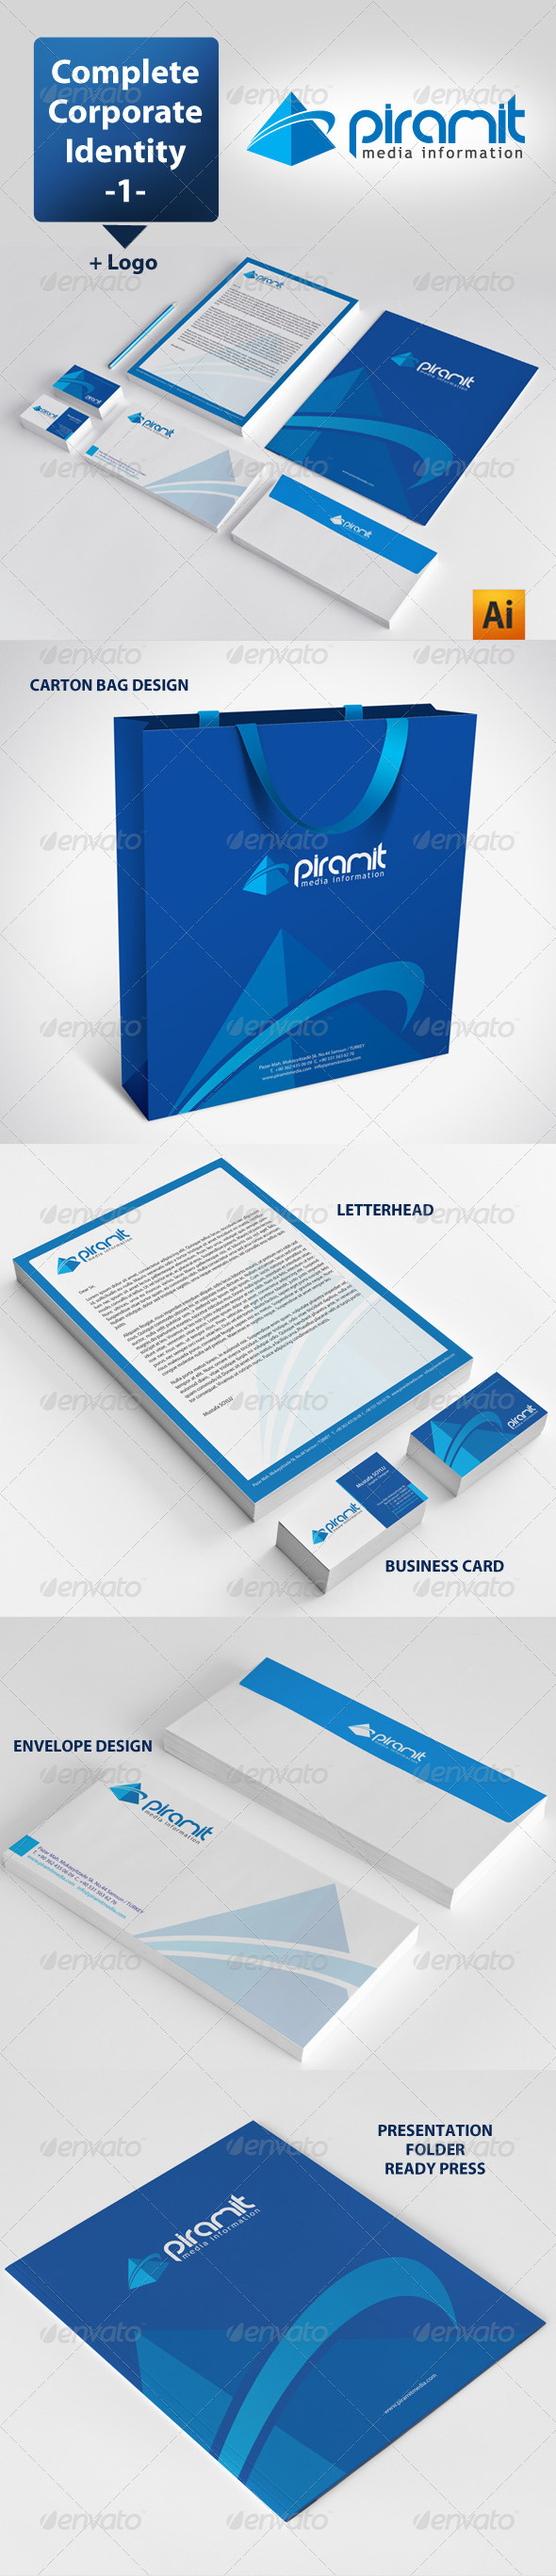 GraphicRiver Piramit Media Corporate Identity Package 3520954